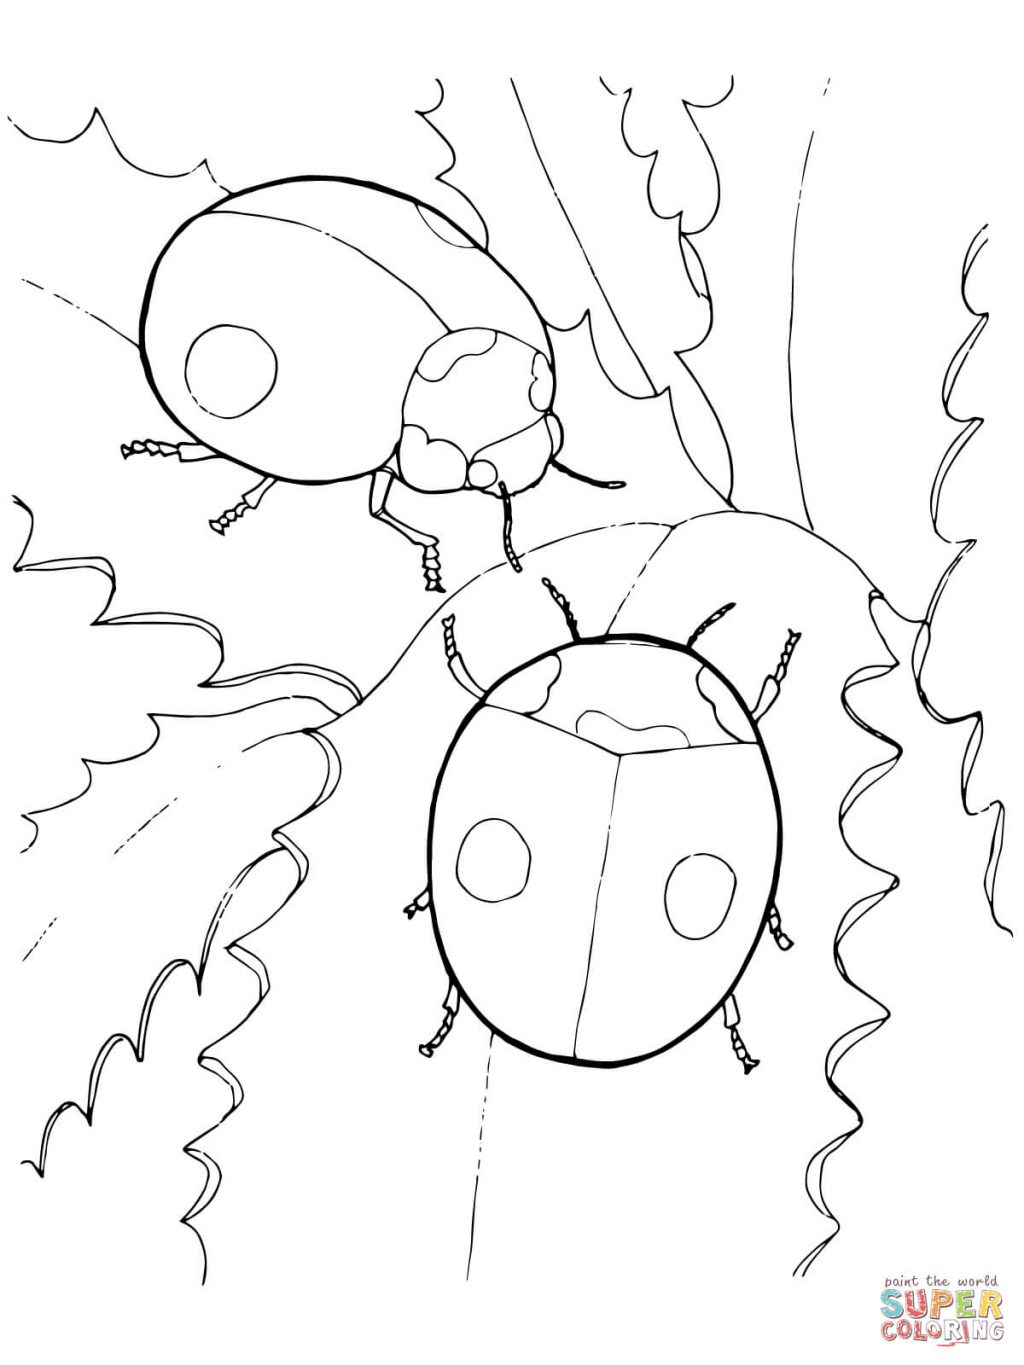 Ladybug Coloring Page Ladybug Coloring Page Colouring Sheets No Spots Free Pages Printable